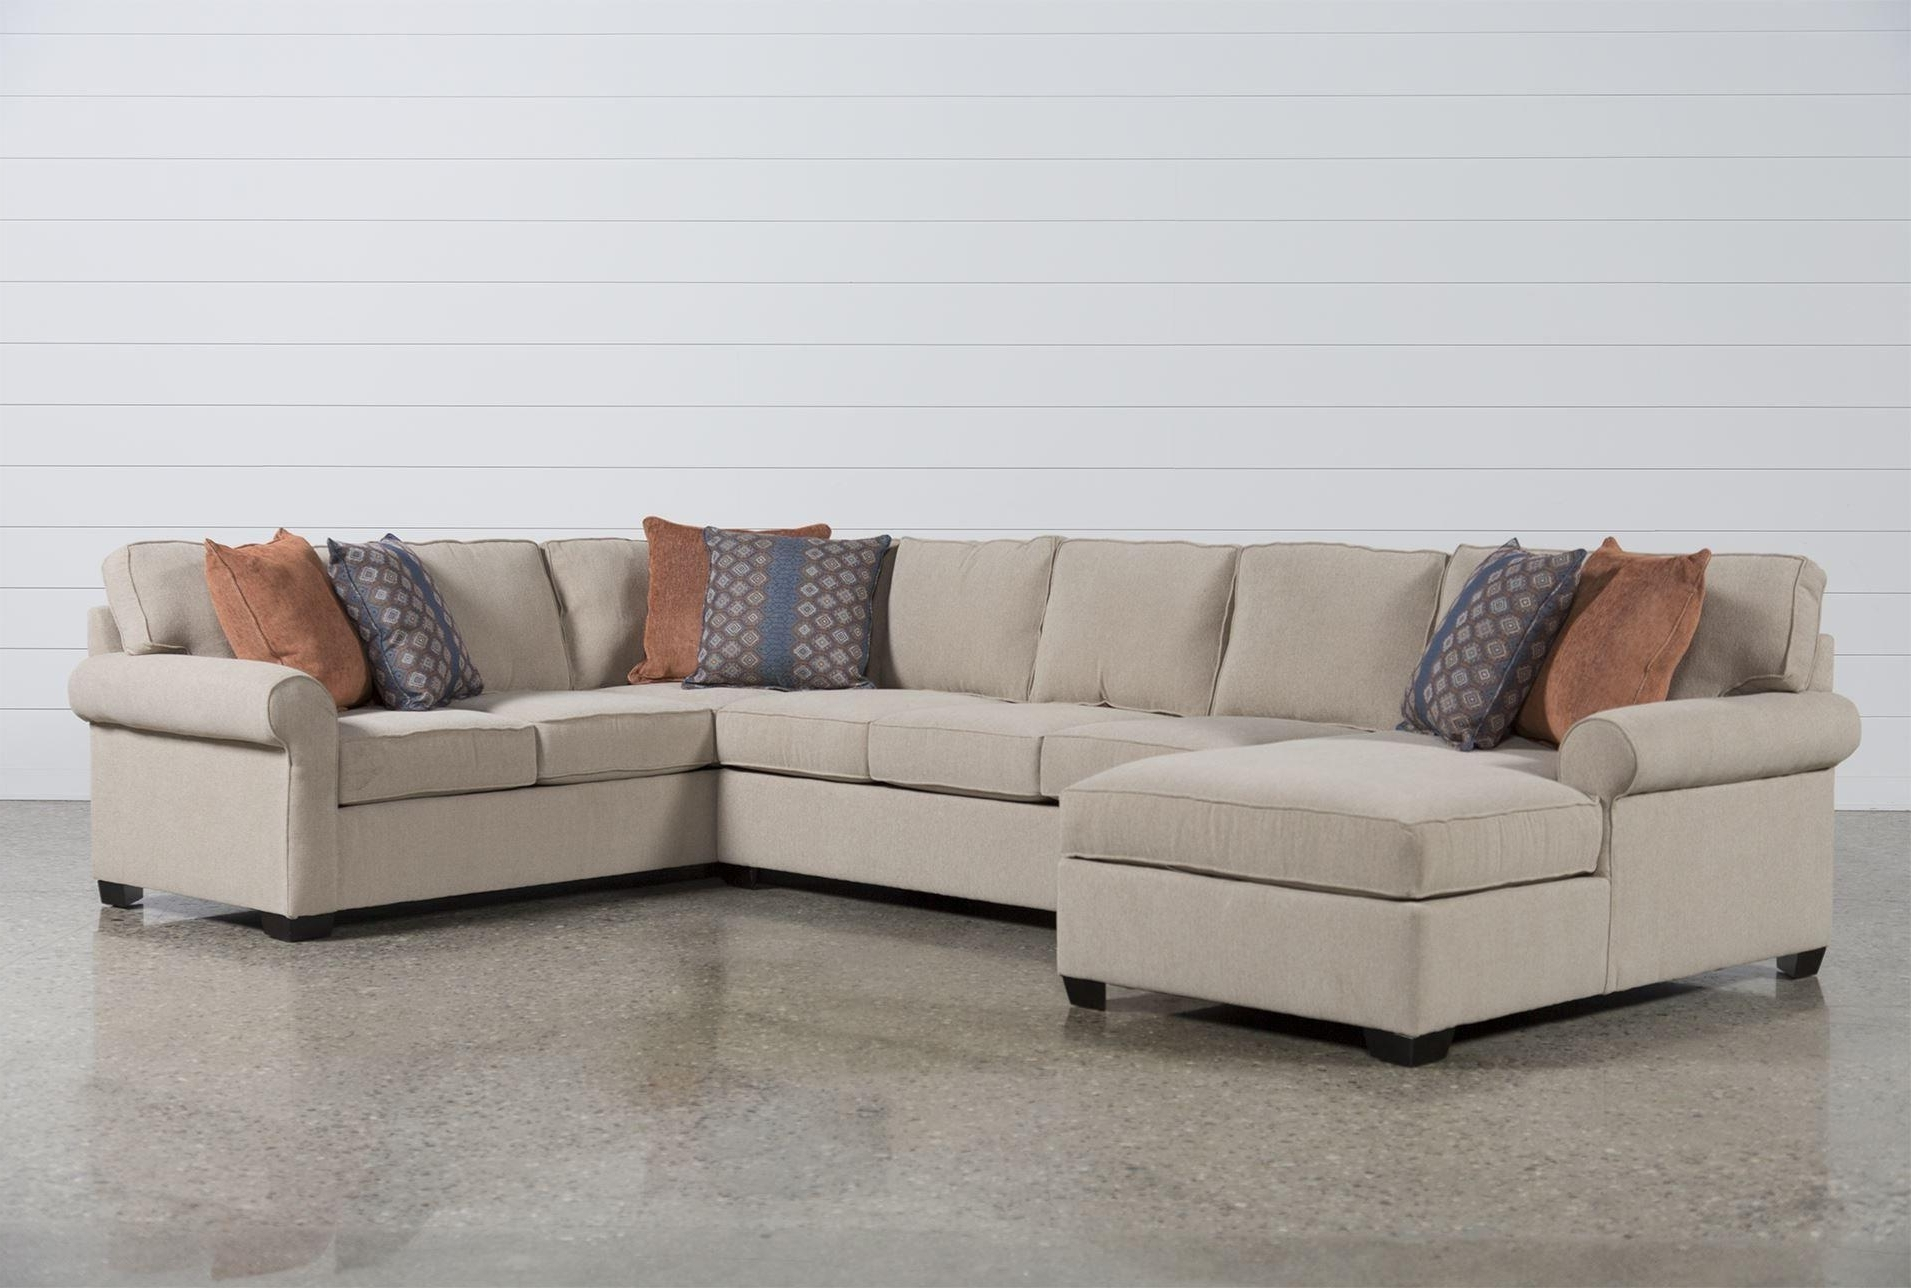 Furniture : Target Loveseat Unique Glamour Ii 3 Piece Sectional For Most Up To Date Target Sectional Sofas (Gallery 1 of 20)